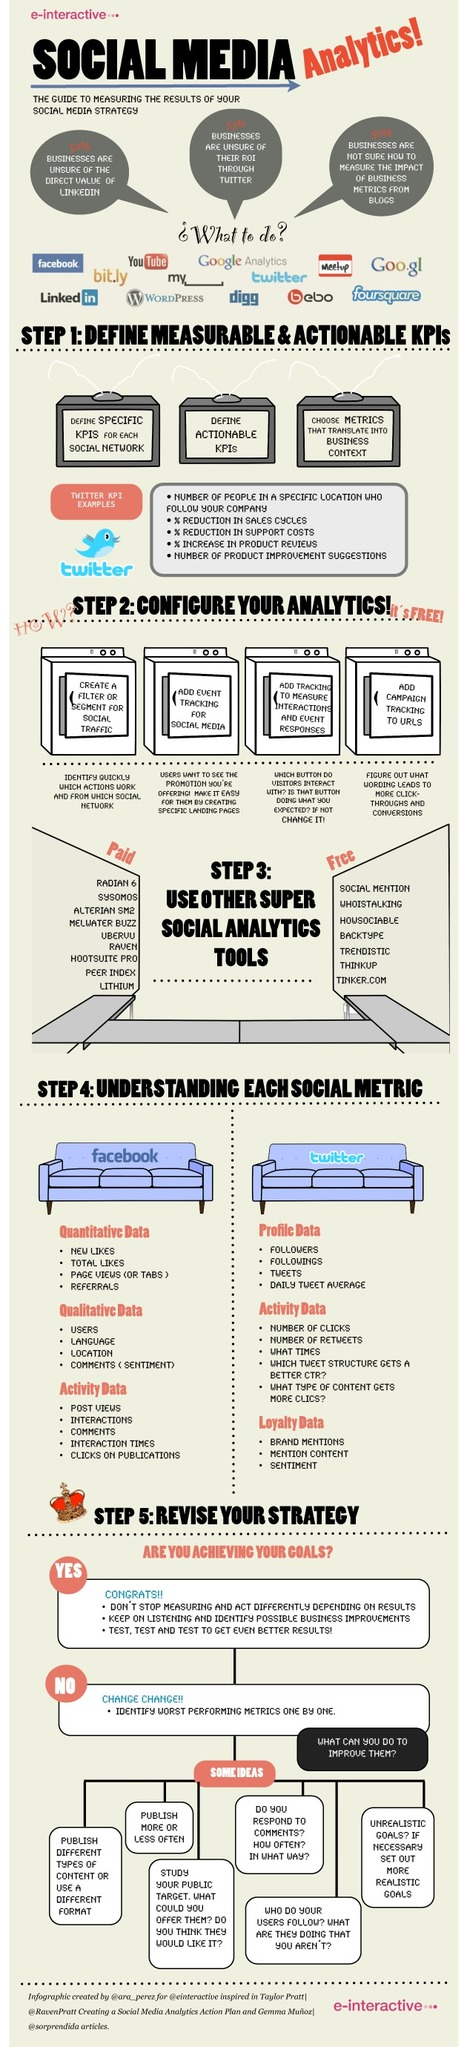 Measure Your Social Media Strategy with this Great Guide [Infographic] | Social Media Technology | Scoop.it